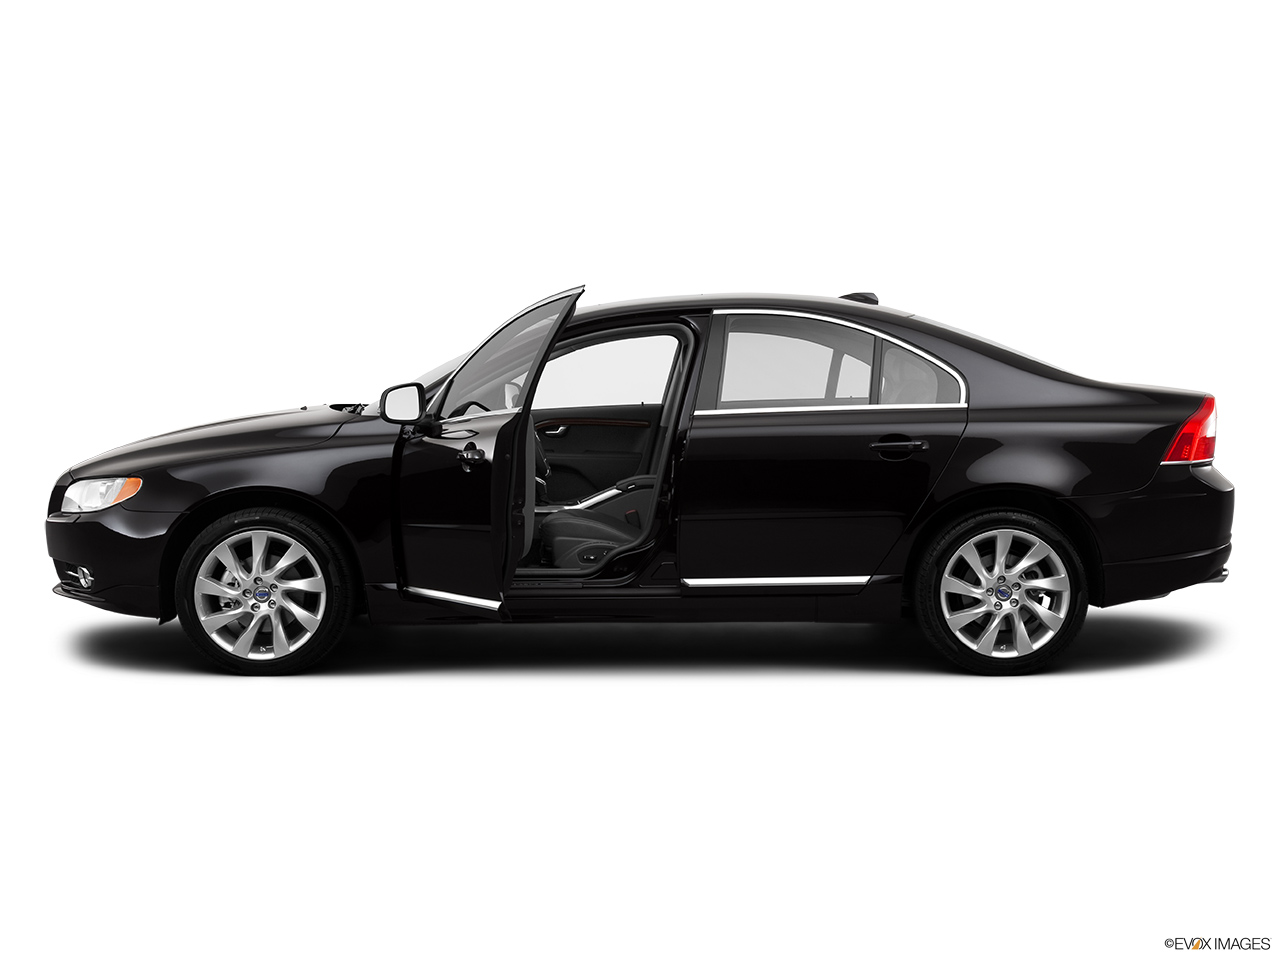 2013 Volvo S80 3.2 Platinum Driver's side profile with drivers side door open.